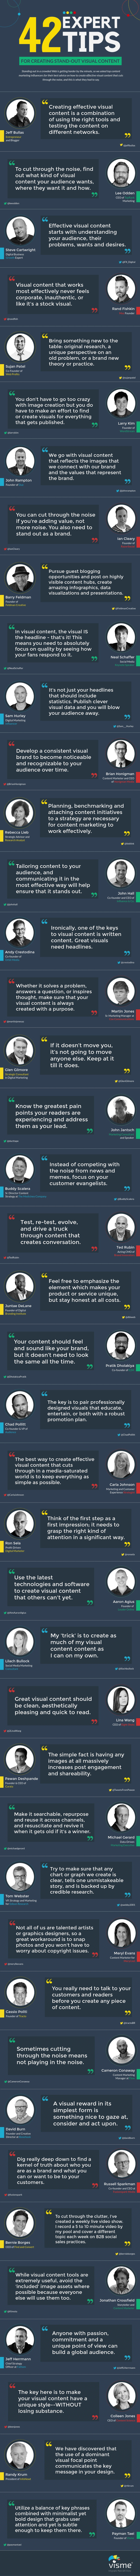 42-expert-tips-for-creating-stand-out-content-infographic